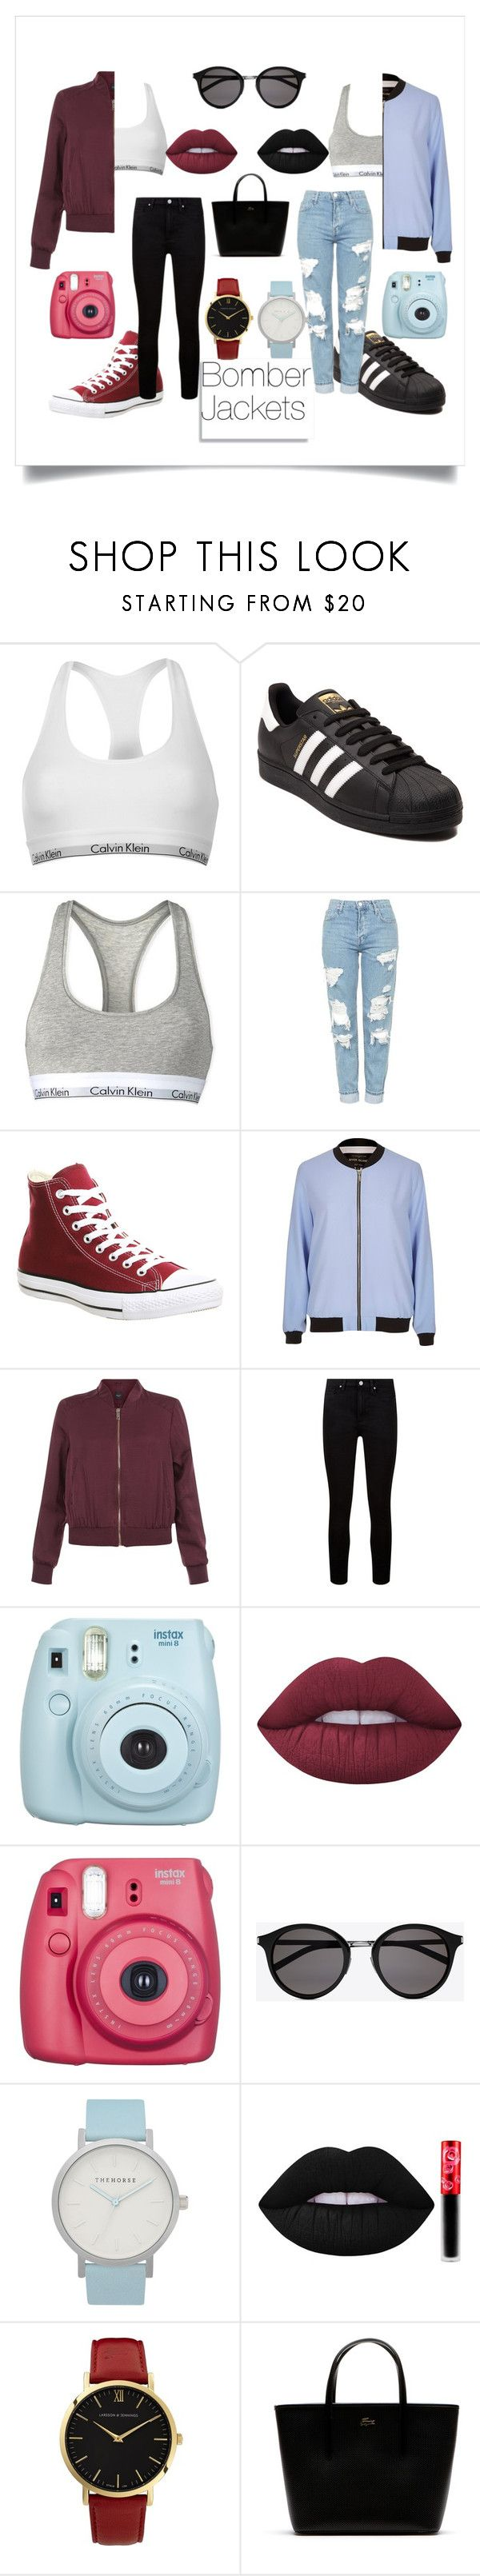 """Bomber Jacket"" by sara-hi23 on Polyvore featuring Calvin Klein, adidas, Topshop, Converse, River Island, New Look, Paige Denim, Fujifilm, Lime Crime and Yves Saint Laurent"